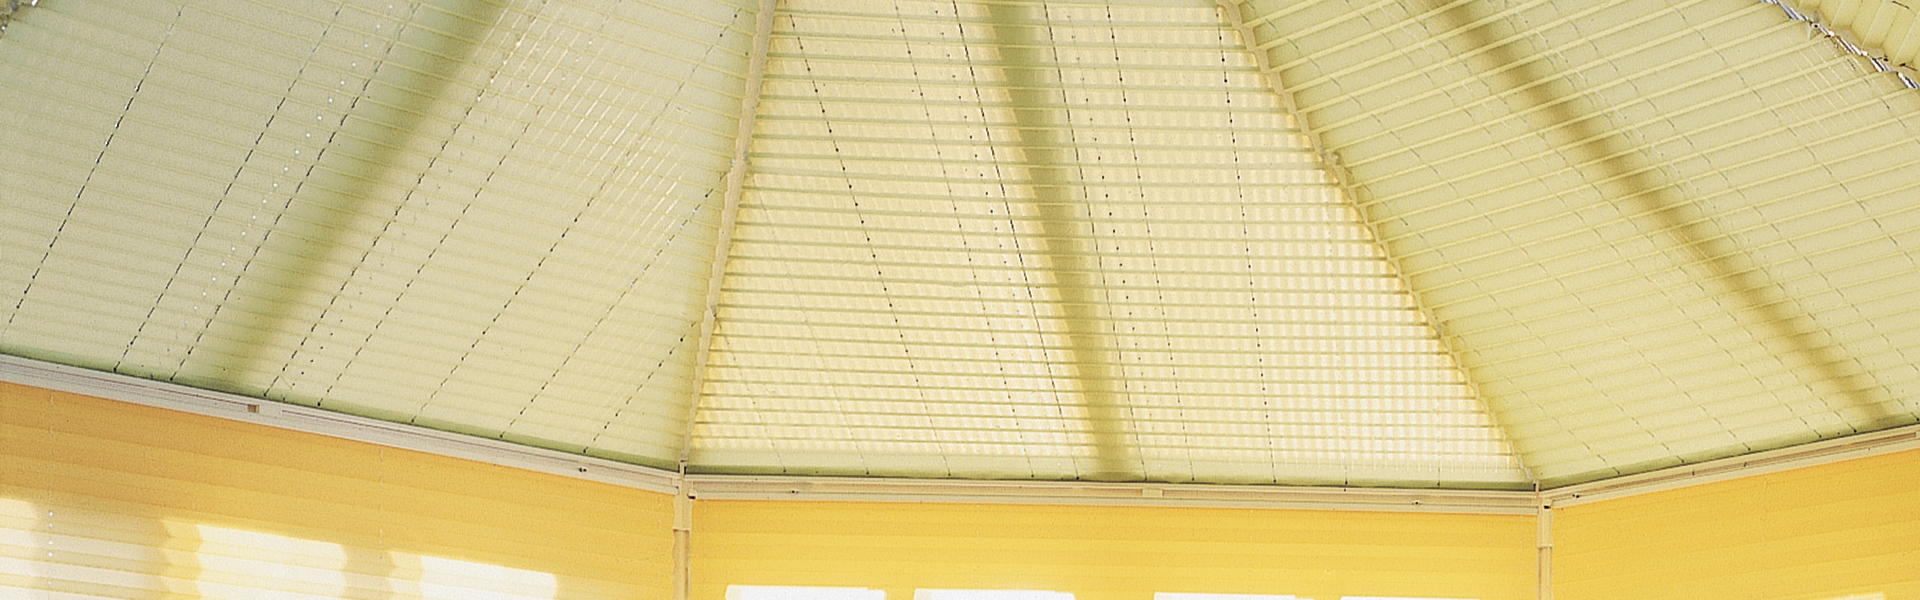 conservatory-roof-blinds-hero-5